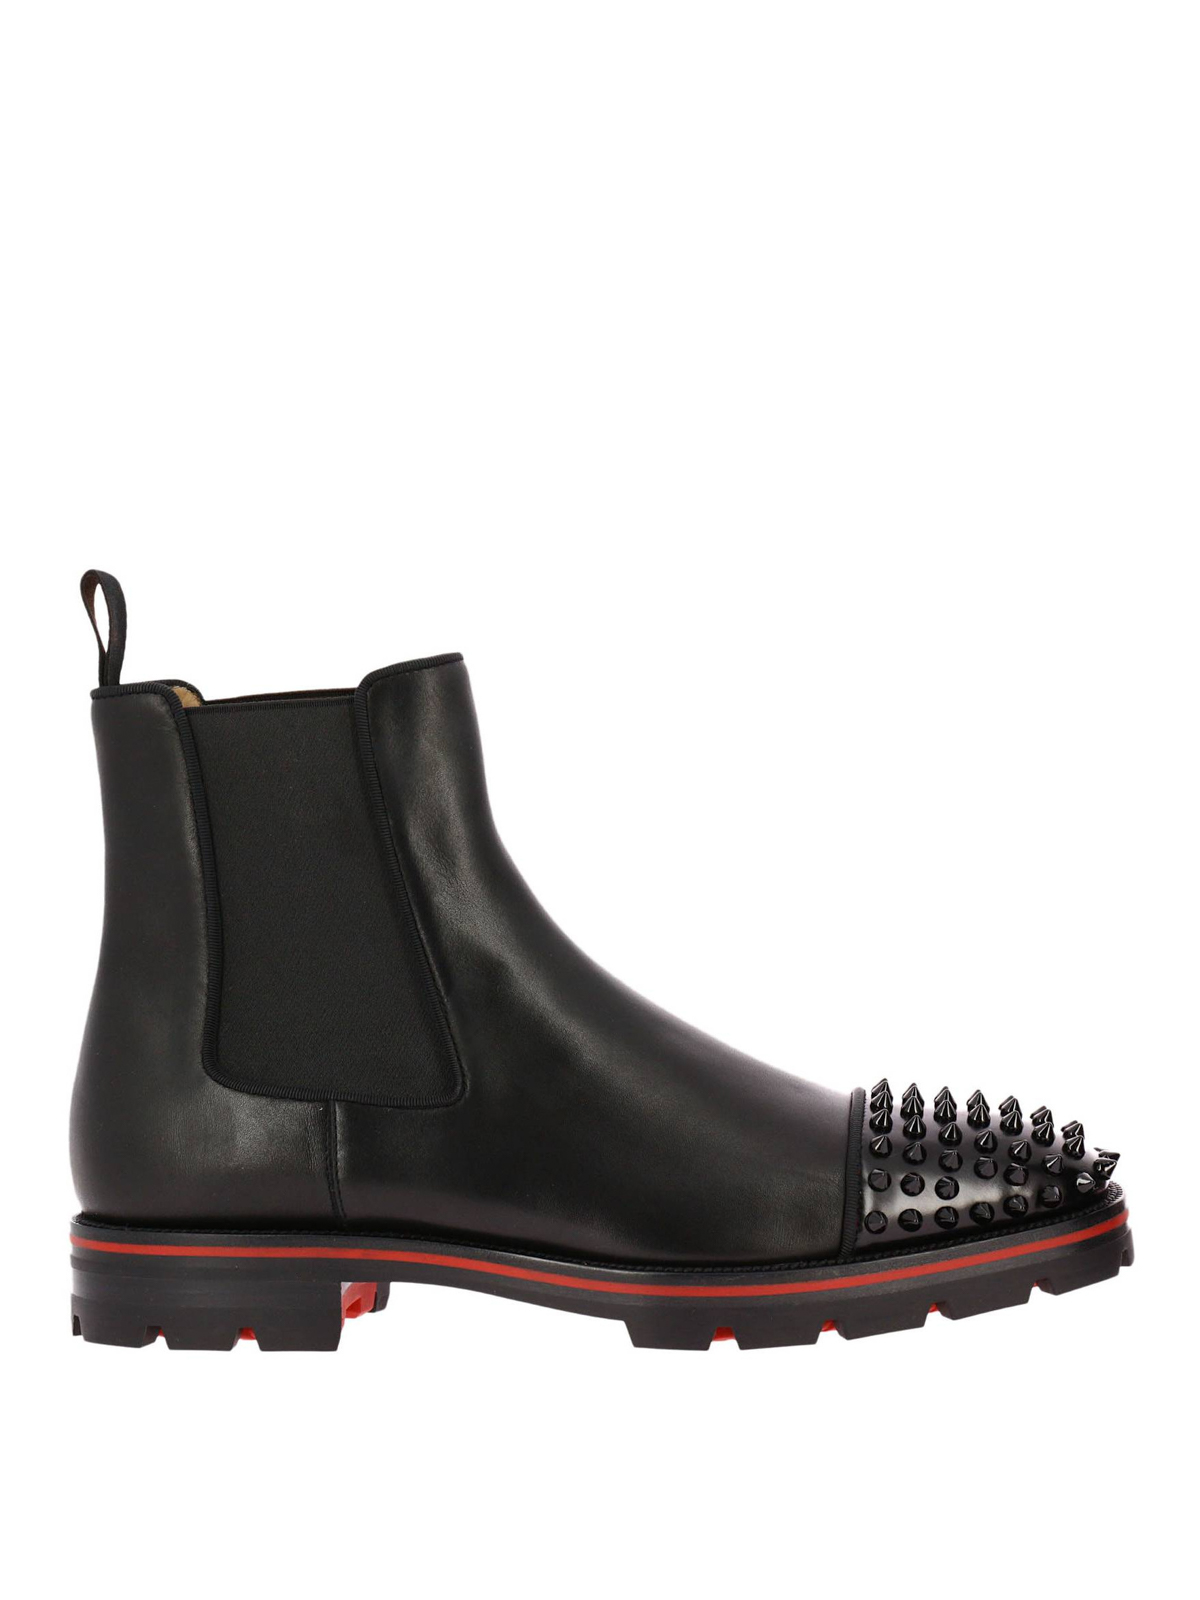 best loved 5e484 fd05a Christian Louboutin - Melon Spikes leather booties - ankle ...